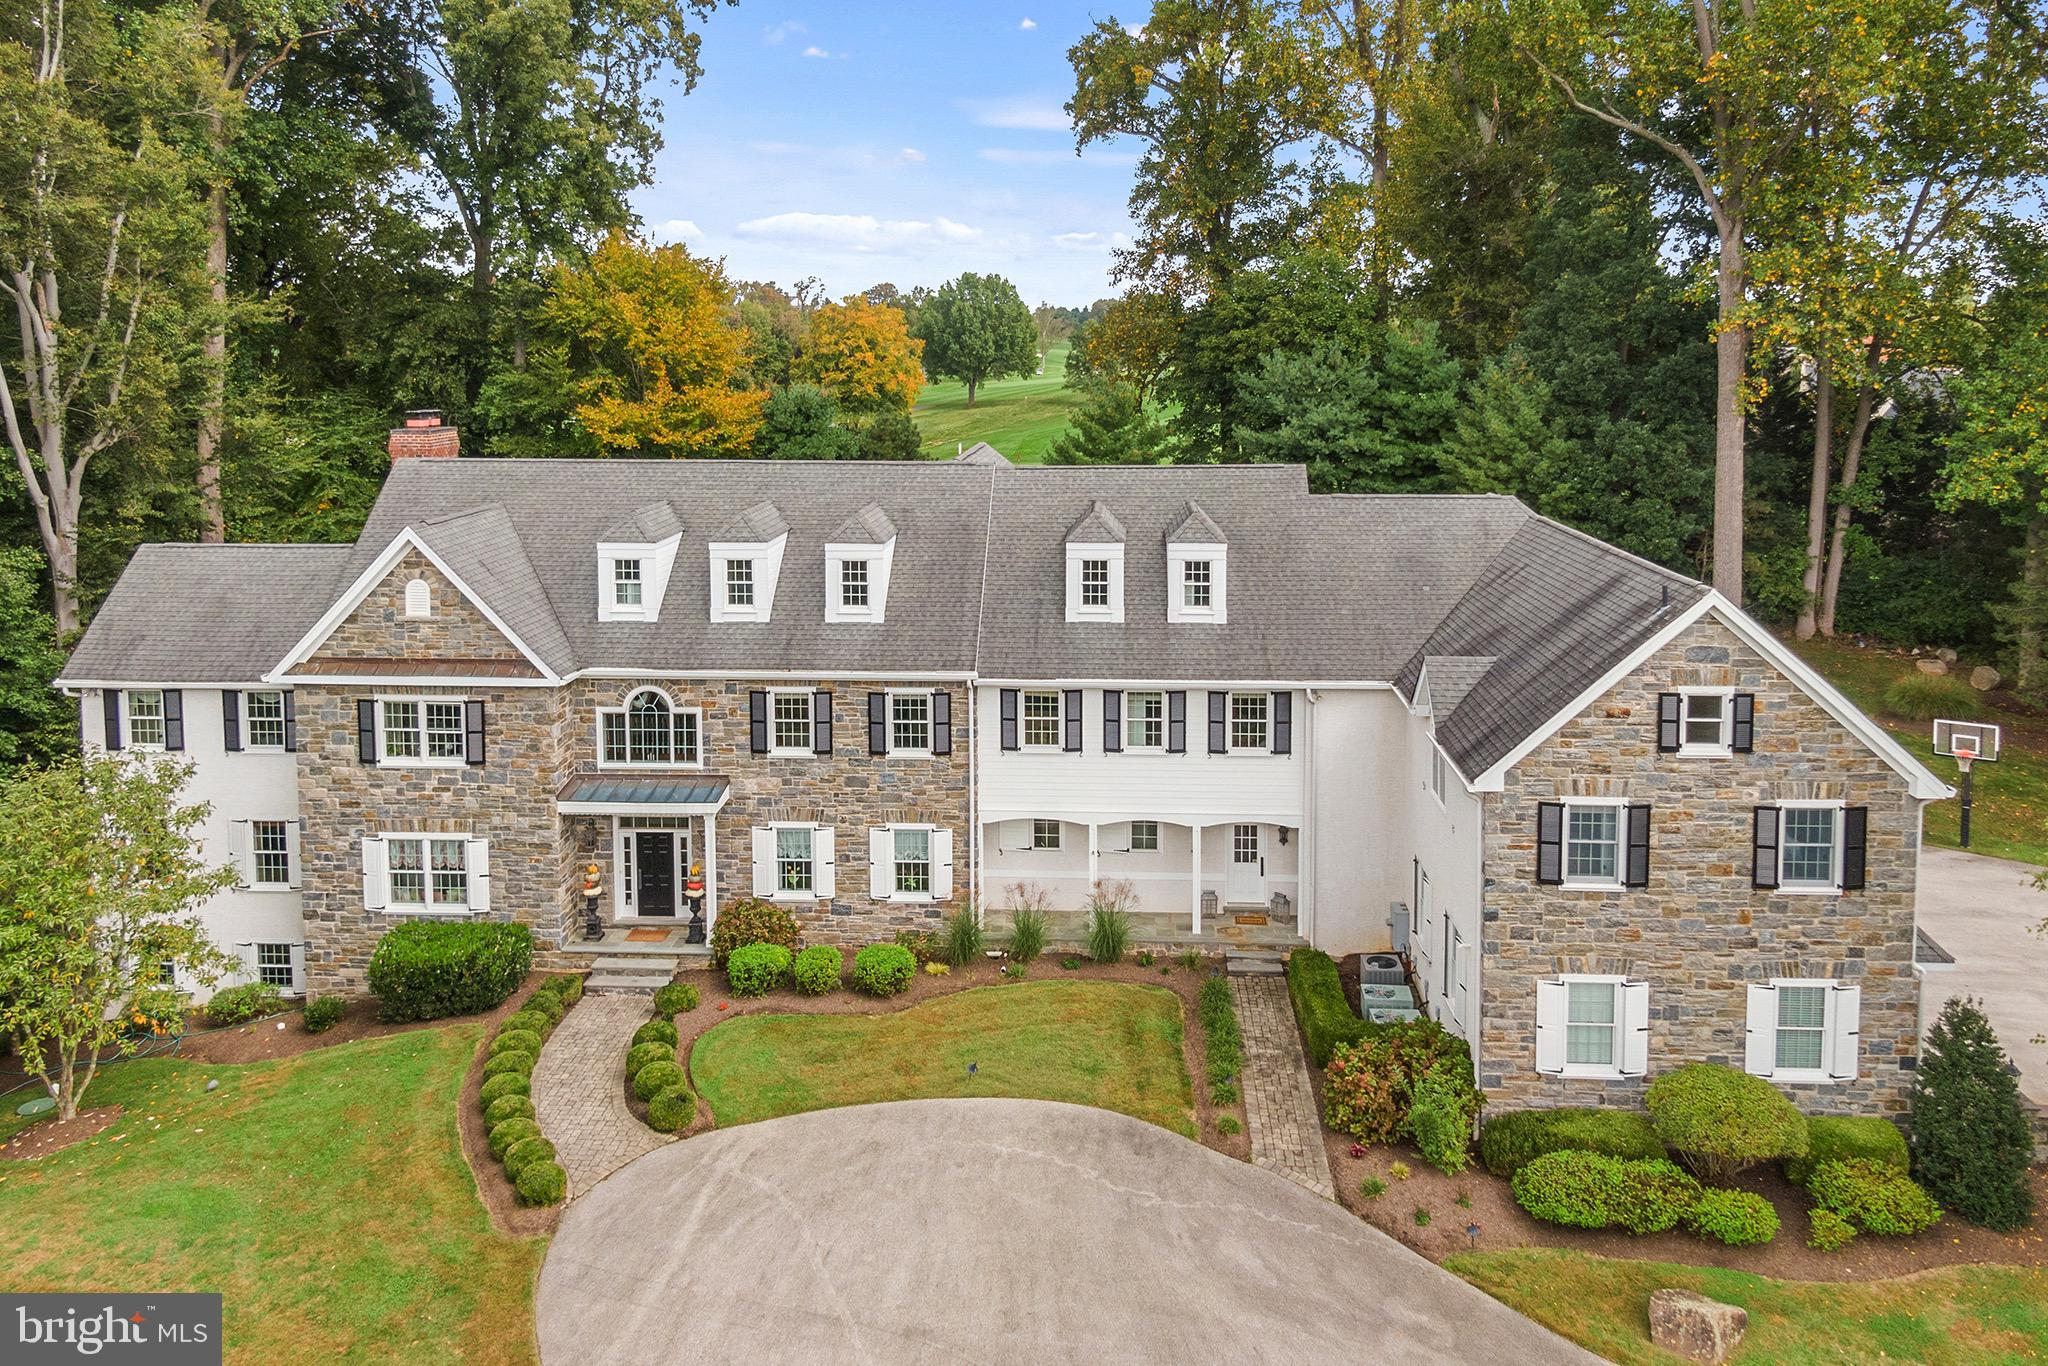 Once in a lifetime opportunity to own an exquisite 17 plus acre estate in Berwyn. This stately 12,000 sq. foot custom-built home welcomes you with a grand circular front driveway and side driveway with an attached four car garage. This estate home is perfectly situated on the 8 th hole of Waynesborough Golf Club with year-round course views. Inside, enter a two-story foyer with bridge above to main bedroom suite and rear yard views. Welcome guests in the receiving room with formal powder room beyond. Soaring 10 ft ceilings, arched doorways and timeless custom millwork, coffered ceilings and wainscoting showcase the incredible custom carpentry. This open floor plan blends everyday living and invites entertaining for the most memorable parties. The living room features a fireplace, site finished herringbone pattern hardwood floors and a window seat with golf course views. The living room connects to a private office/study including incredible woodwork and three walls of windows overlooking lush serene landscapes. The formal dining area offers deep window sills, wall sconces, wainscoting and leads to a large butler pantry with prep and storage area, wine racks, sink and more. The gourmet Kitchen features custom cabinetry, Monogram fridge, 8 burner Monogram range and professional grade double ovens, warming drawers, two sinks, island work space and pantry closet. The kitchen leads to a light filled breakfast room that empties out on to the expansive rear stone patio with firepit and gazebo. Beyond the Kitchen opens to the impressive Great room with two-story ceiling, stone fireplace, an impressive wall of windows and custom built-ins. The mudroom includes entrance to the 4-car garage, rear staircase to 2nd floor and lower level. There is a room of cubbies and plenty of closets. Step up the staircase to a separate wing with the primary bedroom suite with fireplace, vaulted ceiling and sitting area. The walk-in closet is bright and sunny and the bathroom is a retreat like